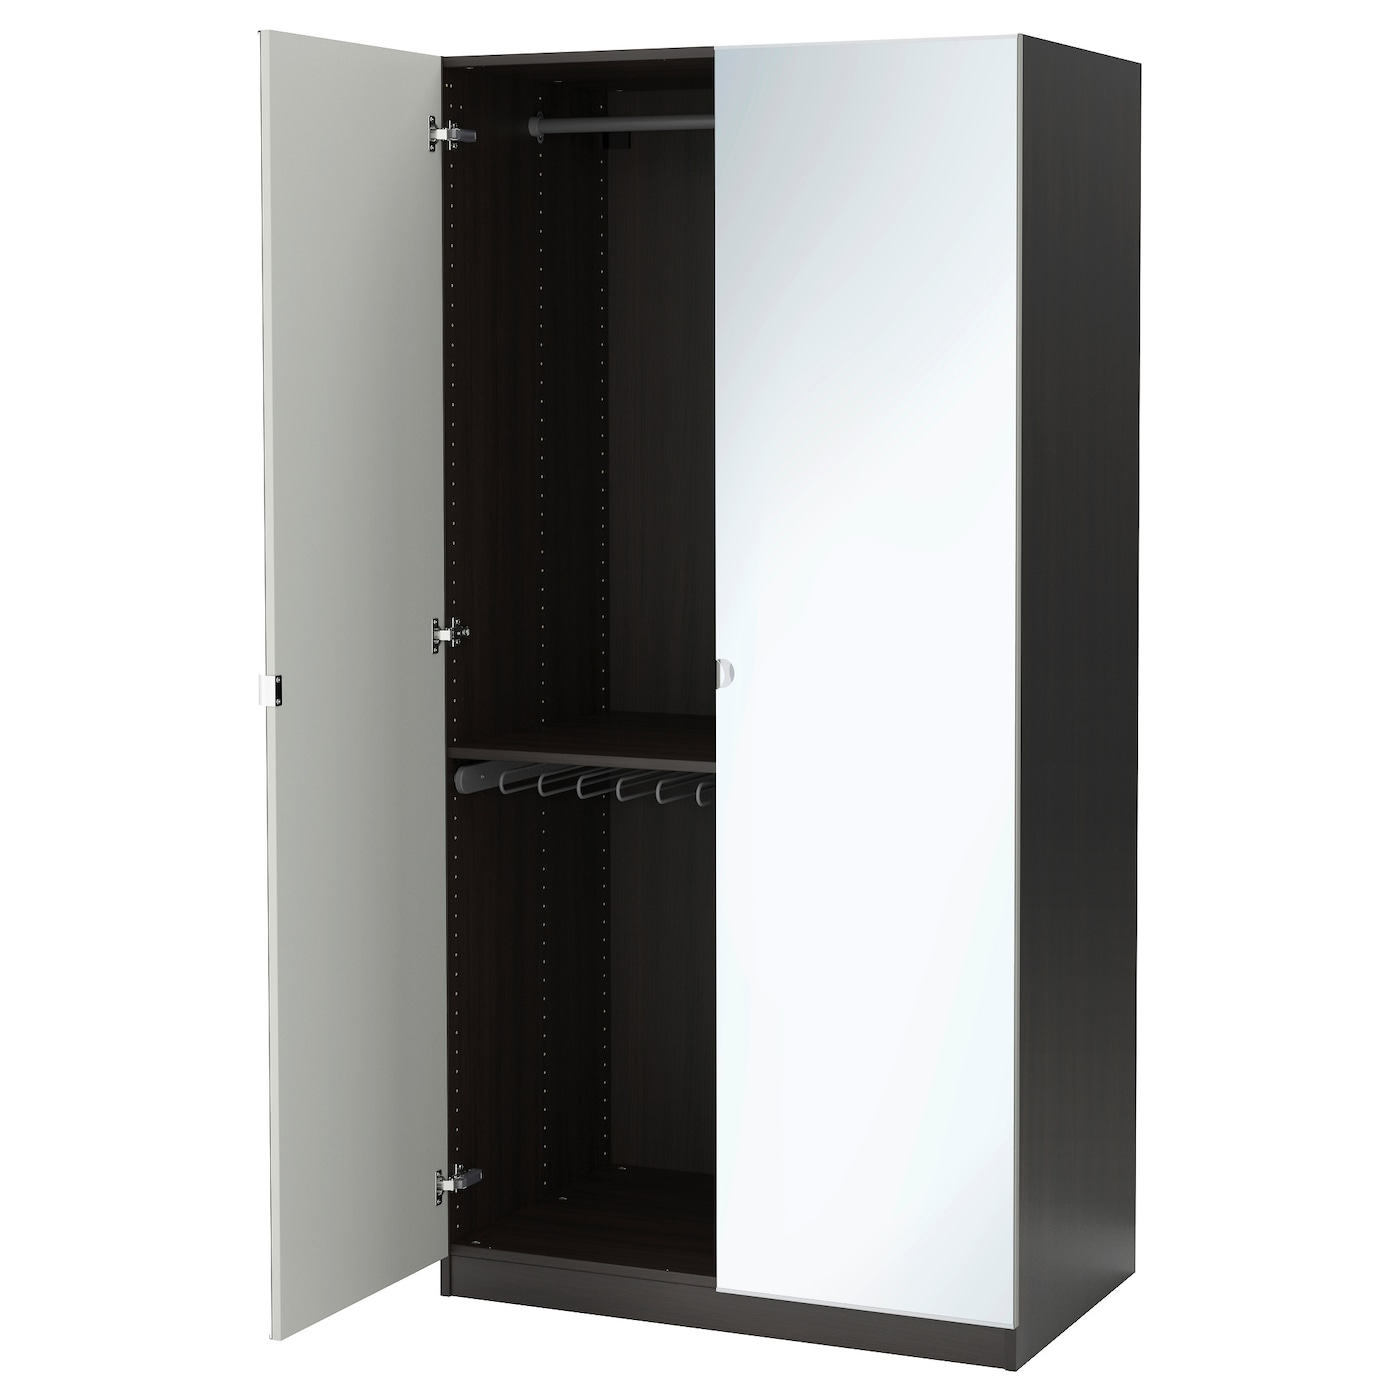 pax armoire penderie brun noir vikedal miroir 100x60x201 cm ikea. Black Bedroom Furniture Sets. Home Design Ideas